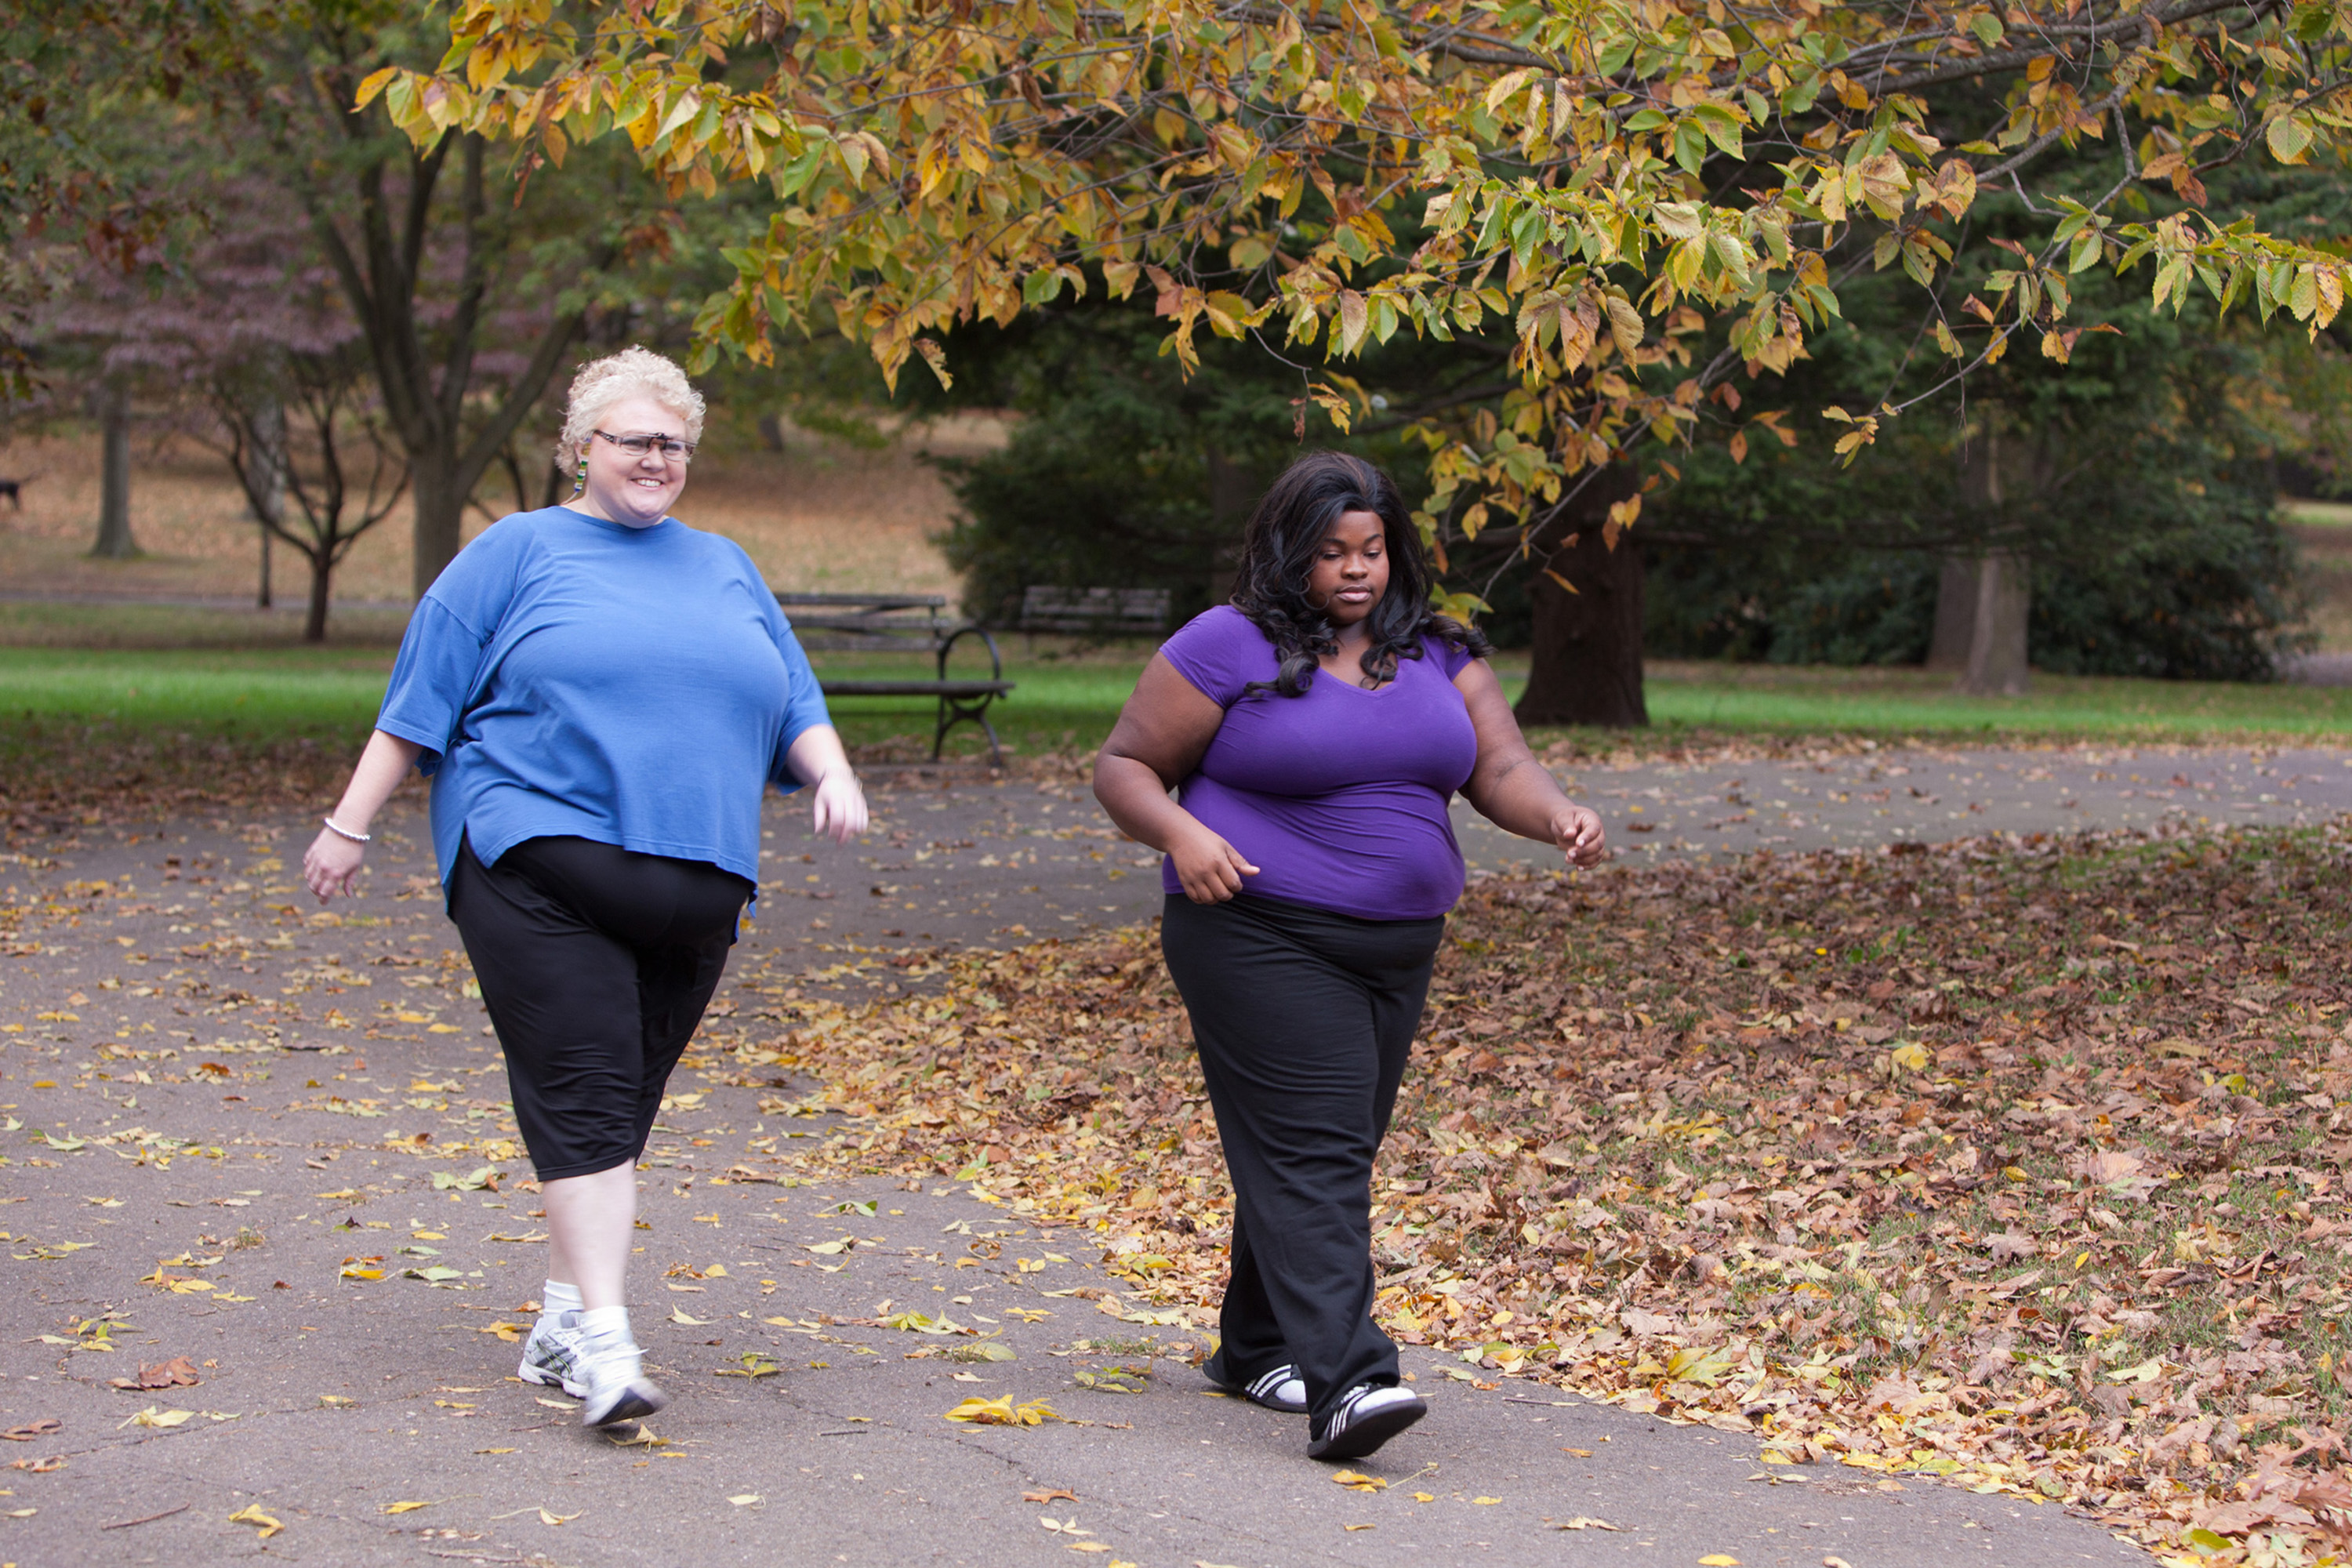 A focus on positive coping strategies could help improve health for those who experience being teased or bullied because of their weight, according to new research by the UConn Rudd Center. (UConn Rudd Center Photo)